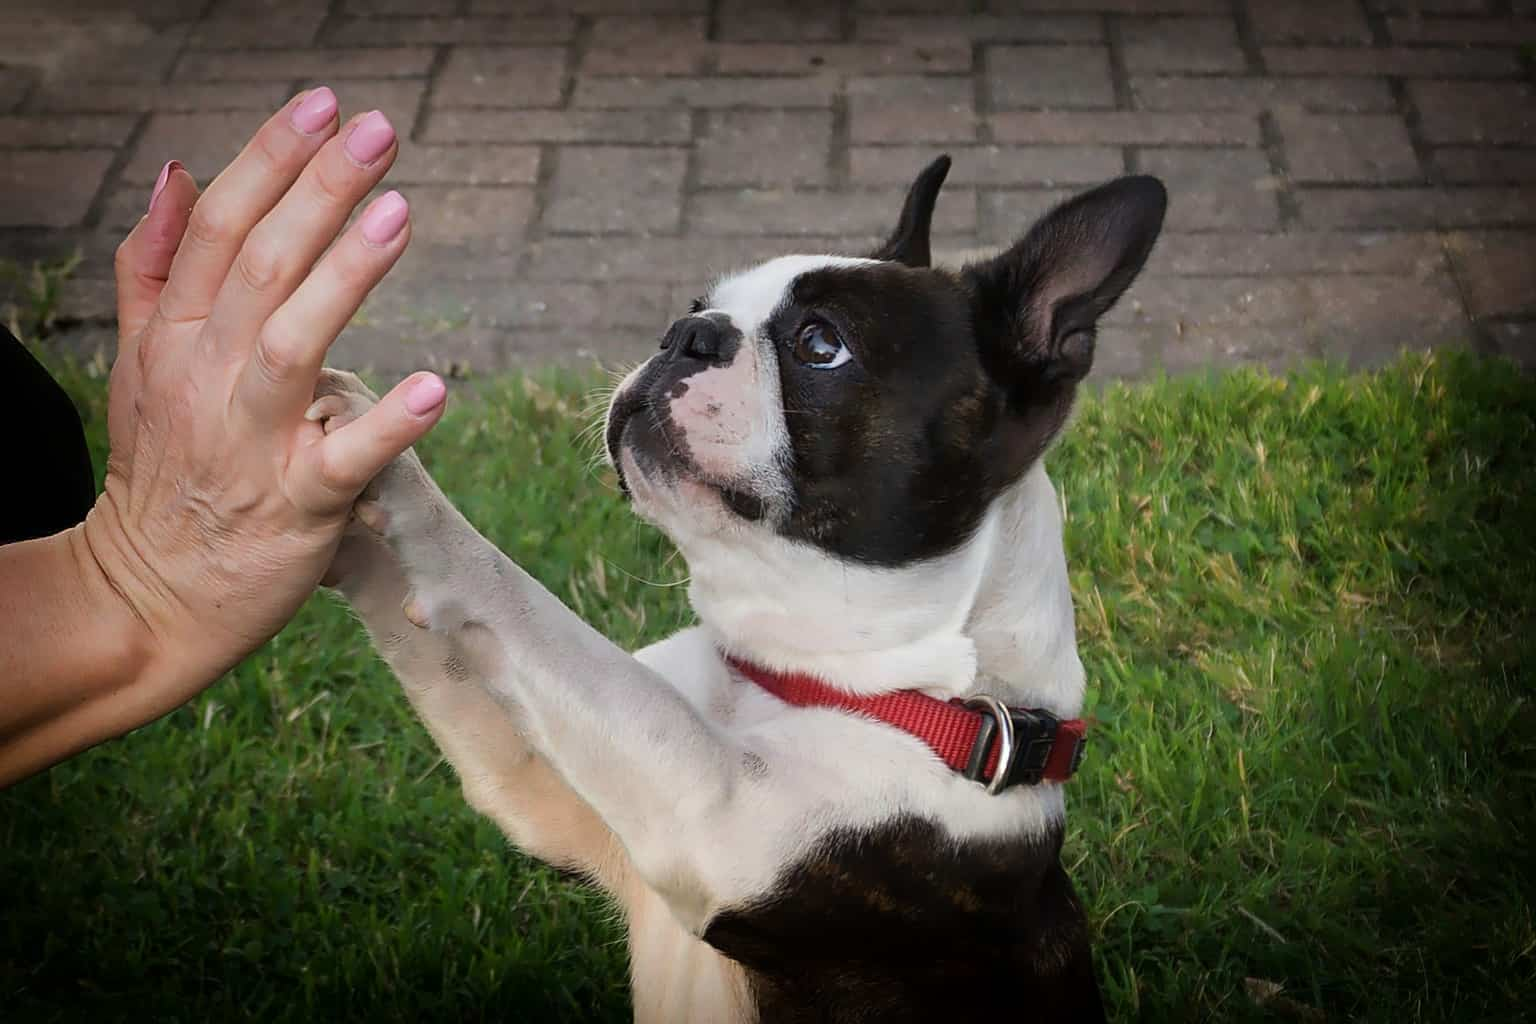 Boston Terrier puppy giving high fives